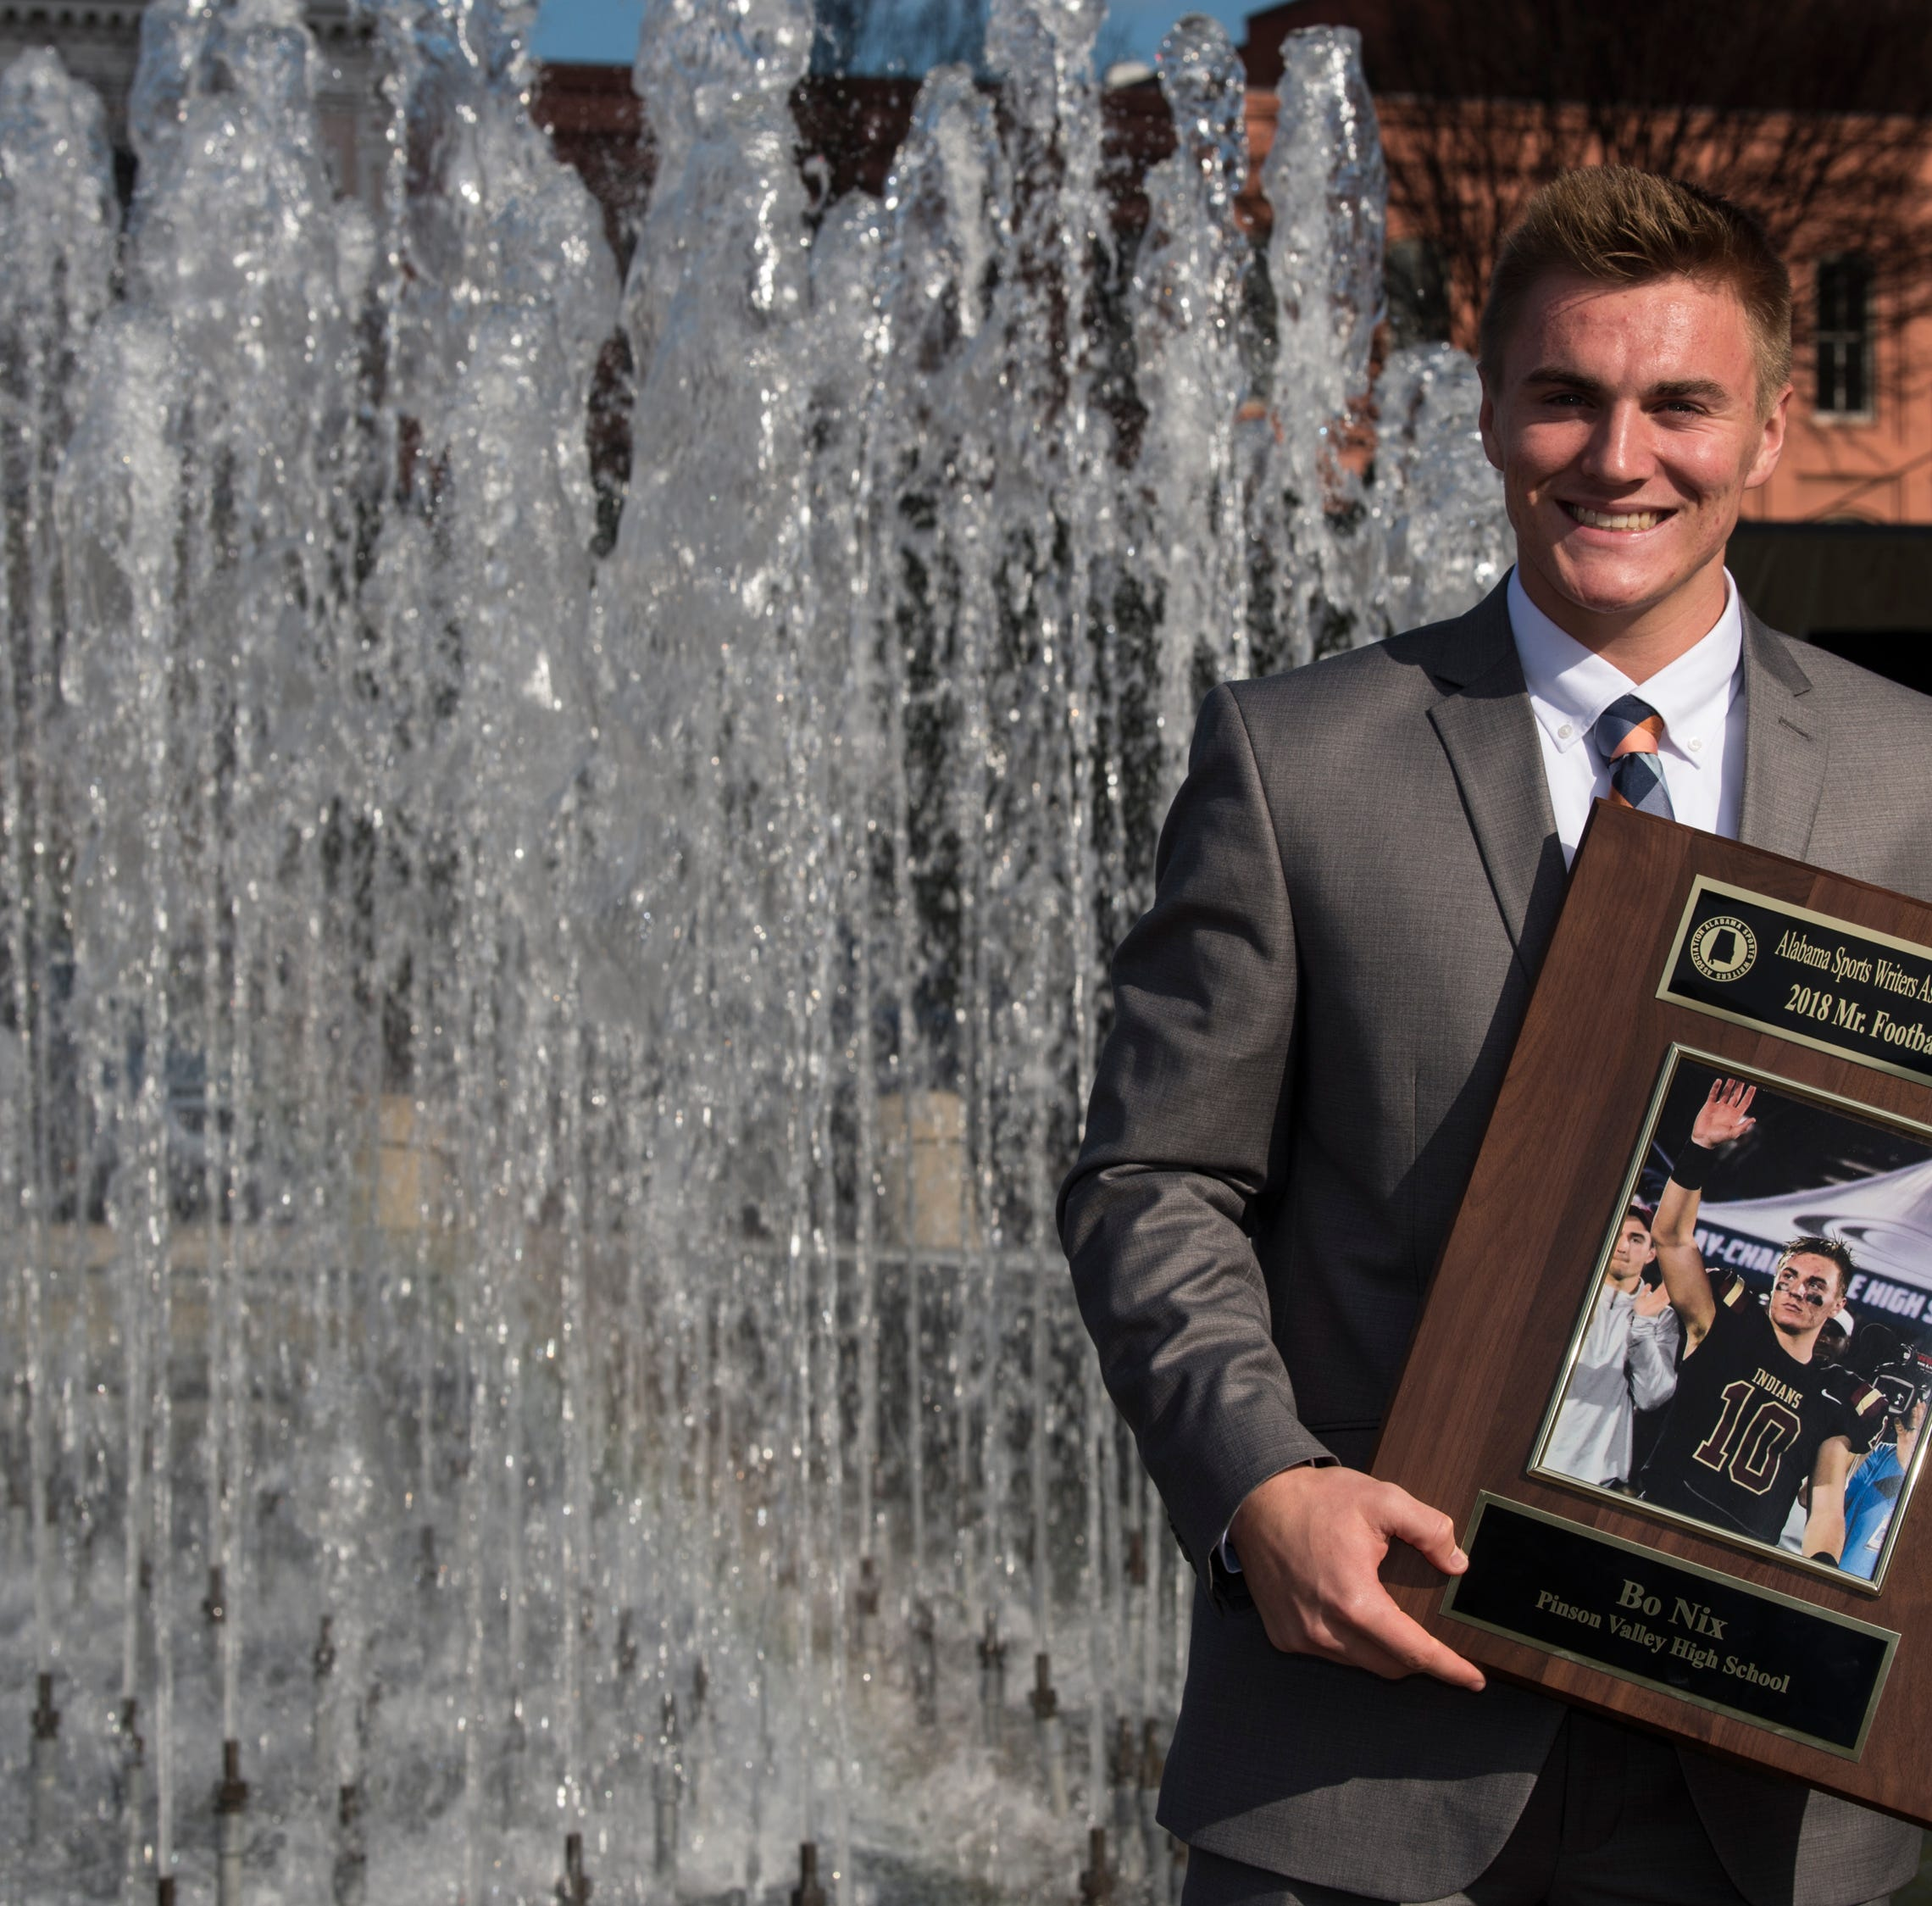 Nix turns Mr. Football trick, lands state's biggest prep football award